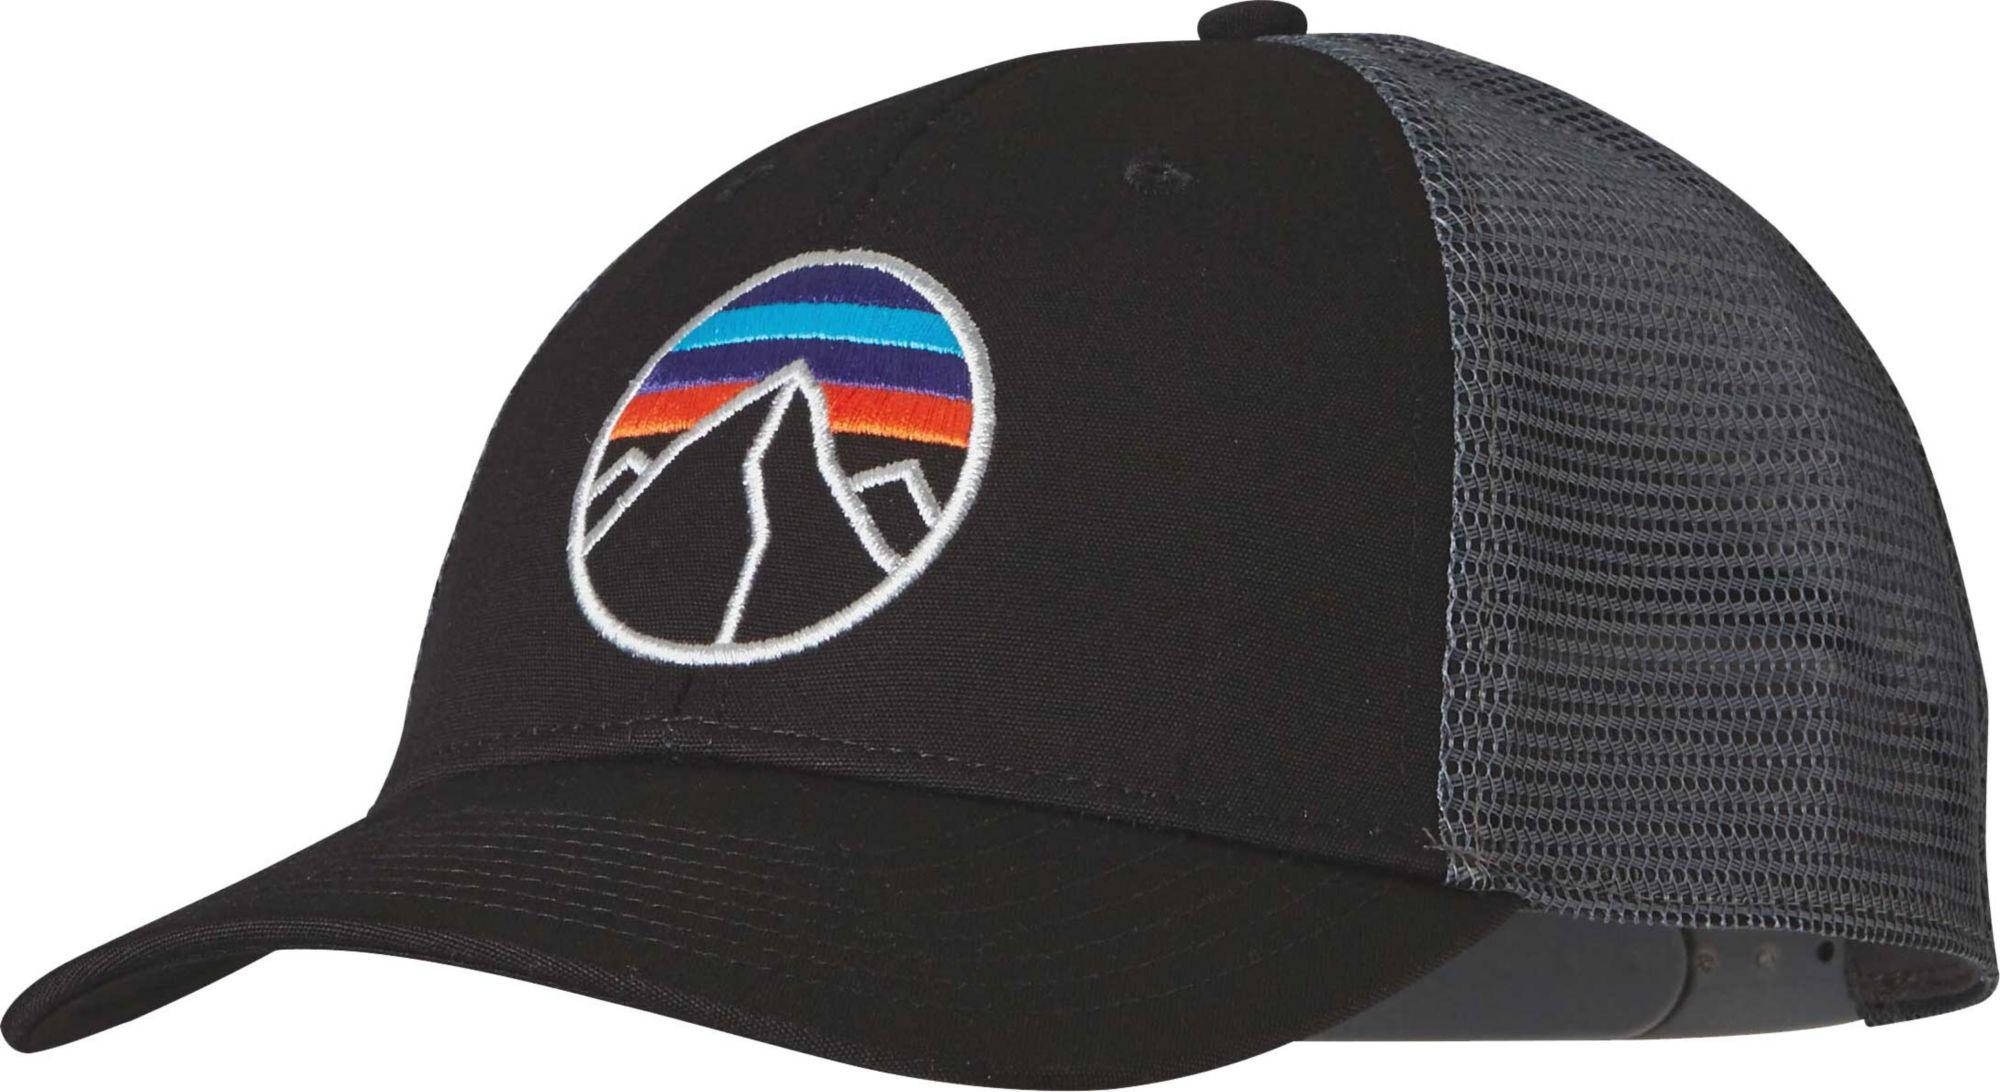 Lyst - Patagonia Fitz Roy Emblem Lopro Trucker Hat in Black for Men 5e3c8dd6aed